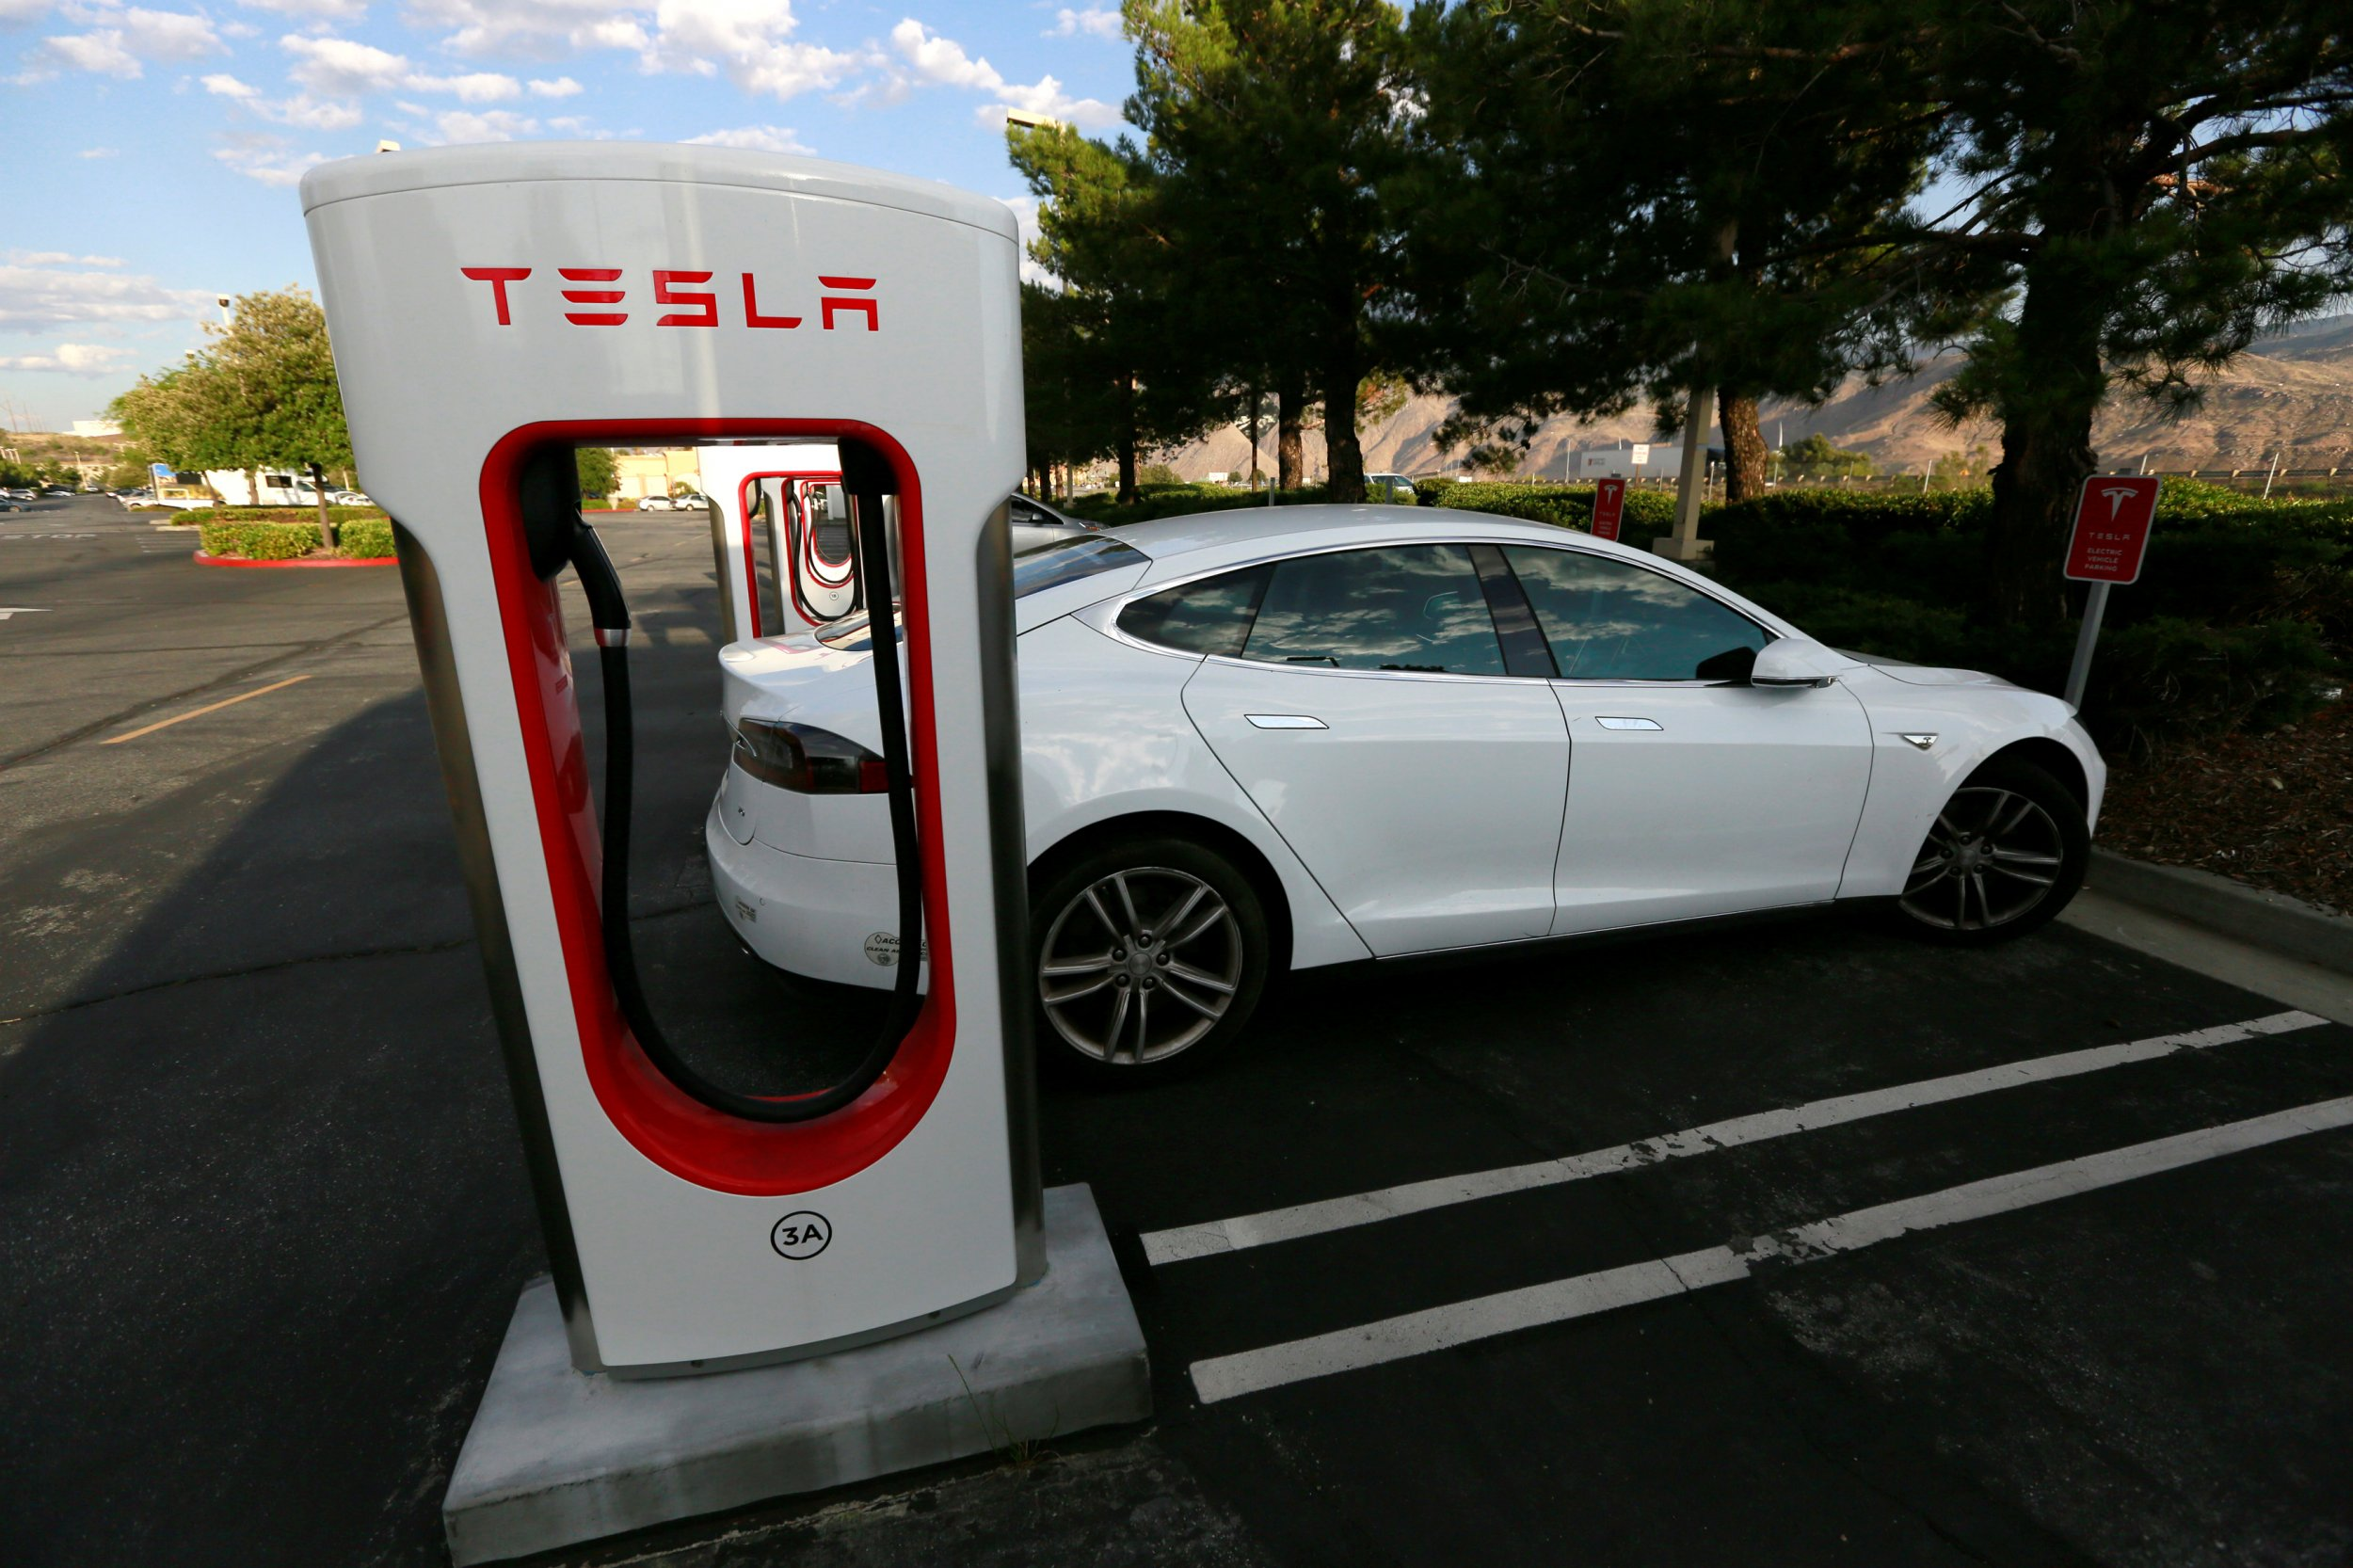 Quora electric cars are a fad that will fade tesla model s charges at a tesla supercharger station in cabazon california on may 18 reuters share business apple tesla electric cars malvernweather Image collections